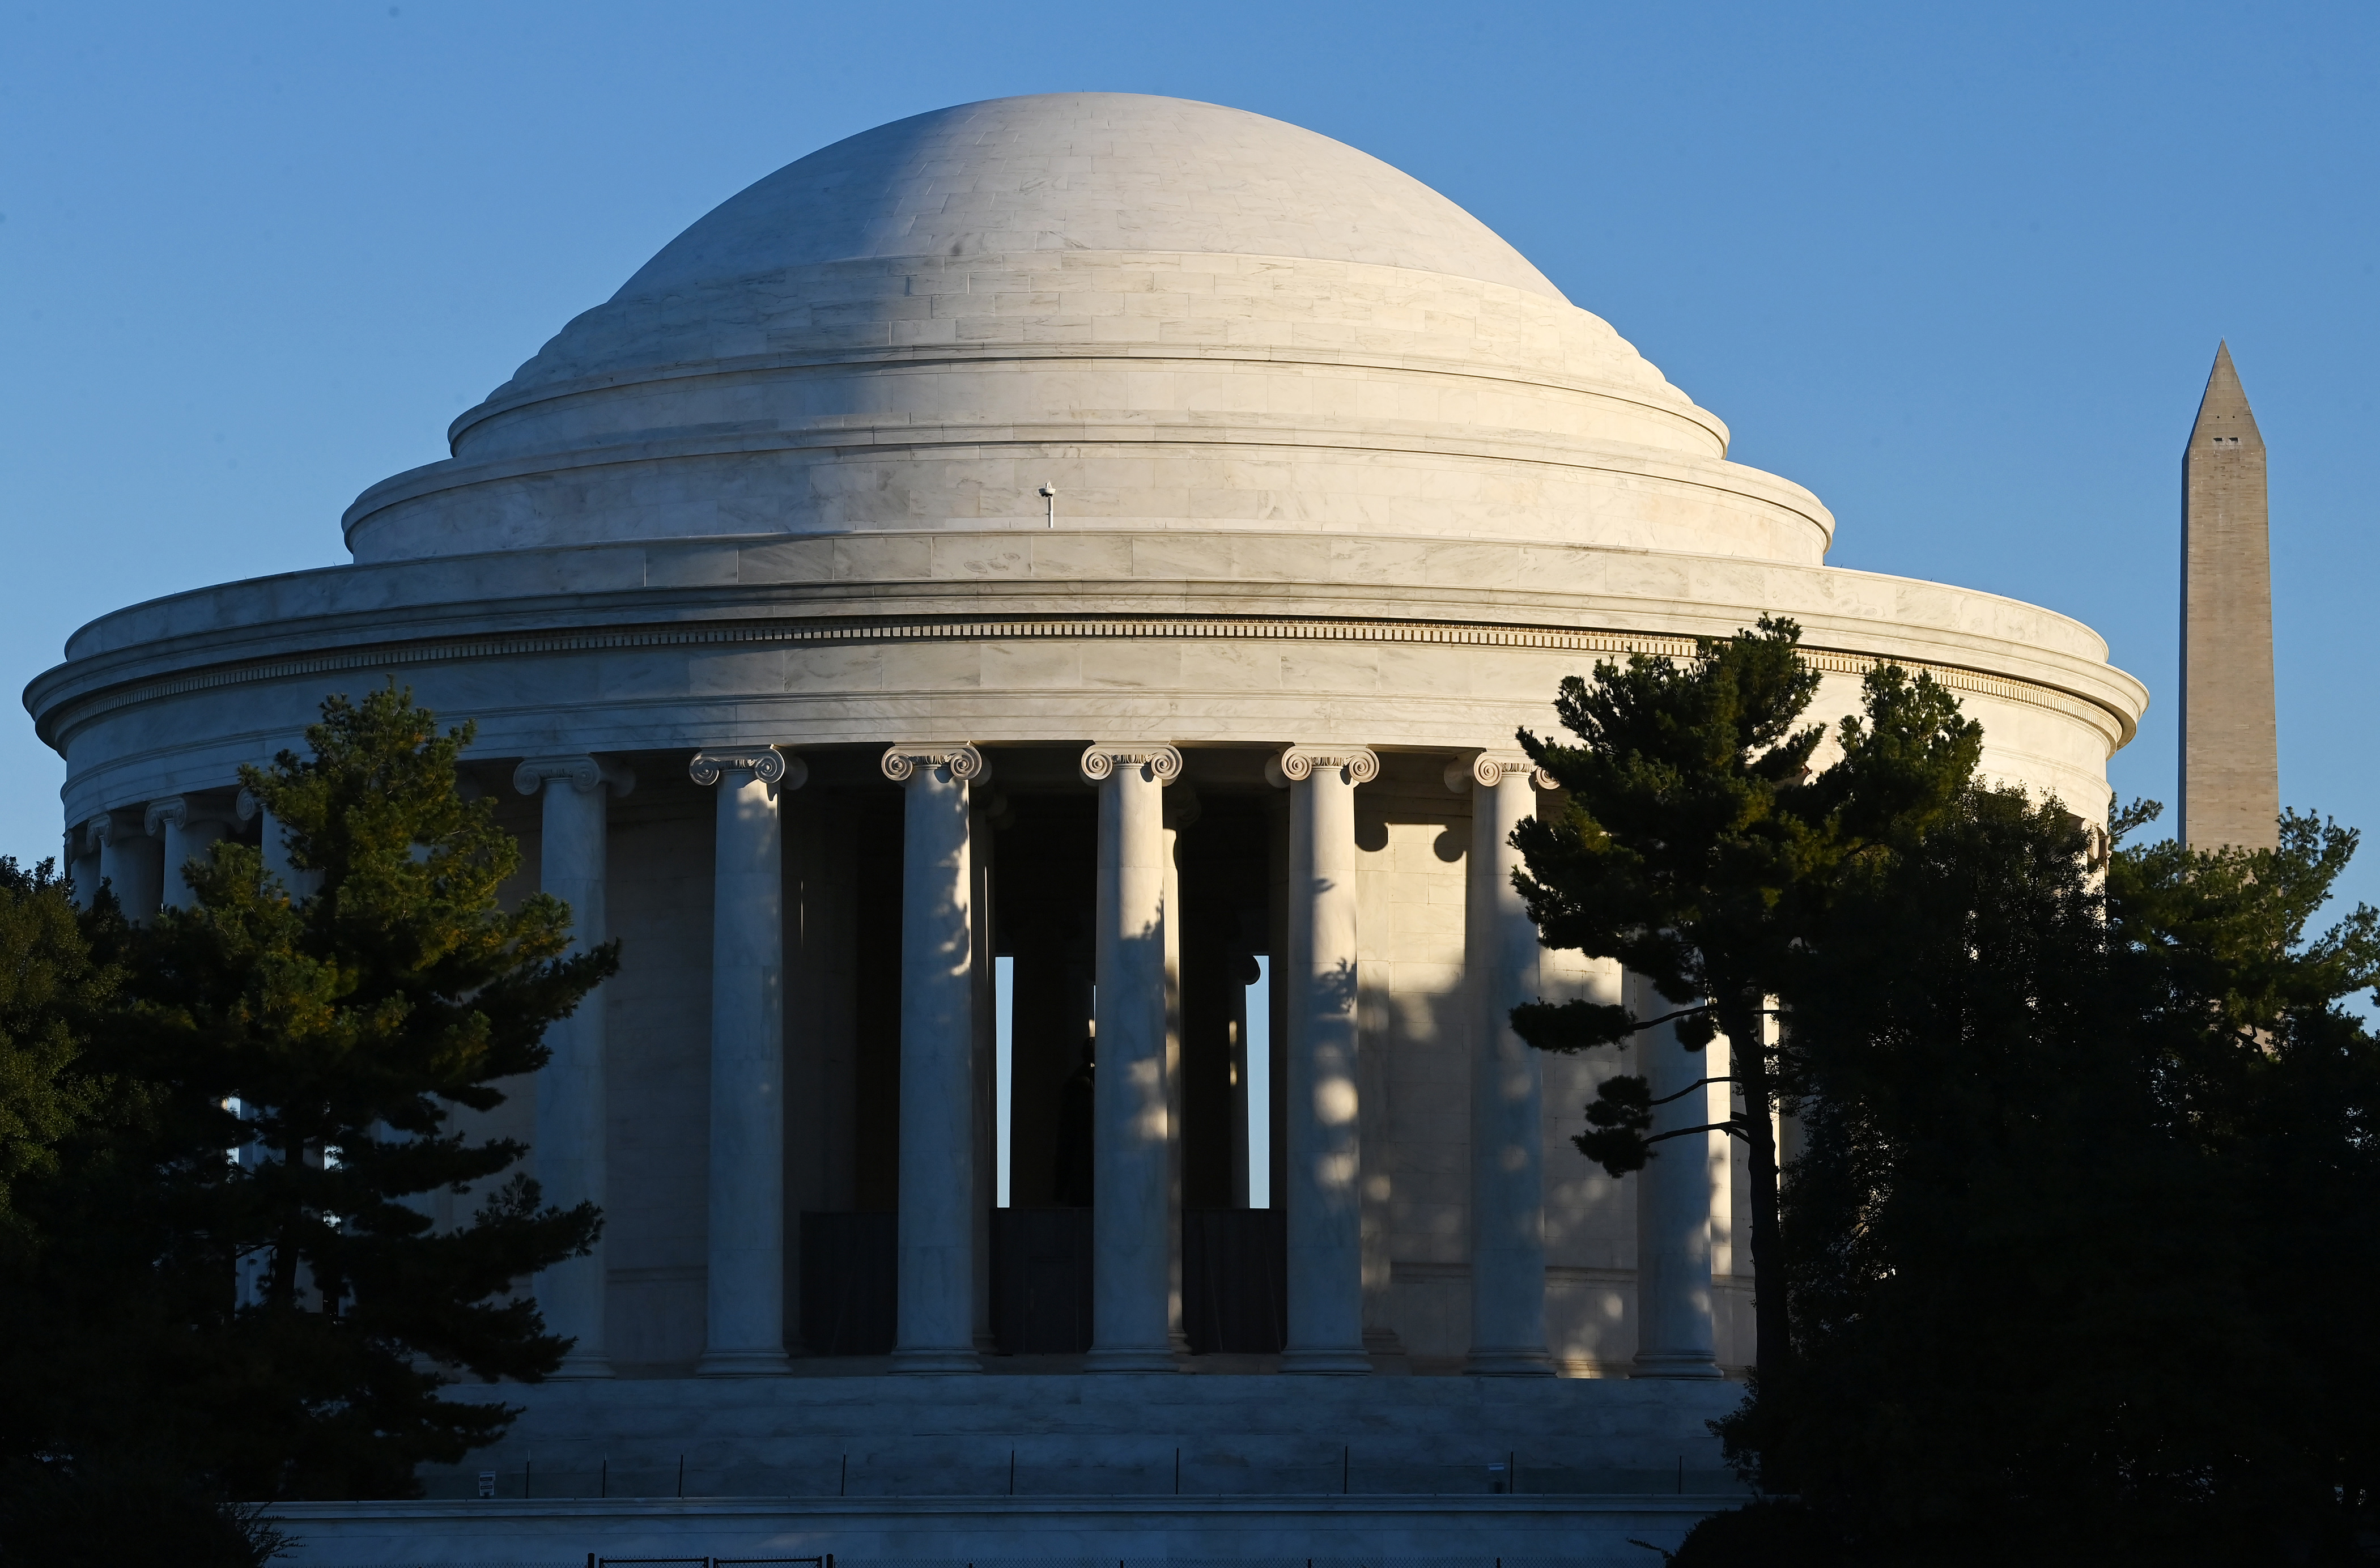 The Jefferson Memorial is seen on Tuesday October 19, 2021 in Washington, DC. The dome of the memorial has been restored along with other portions of the building. MUST CREDIT: Washington Post photo by Matt McClain